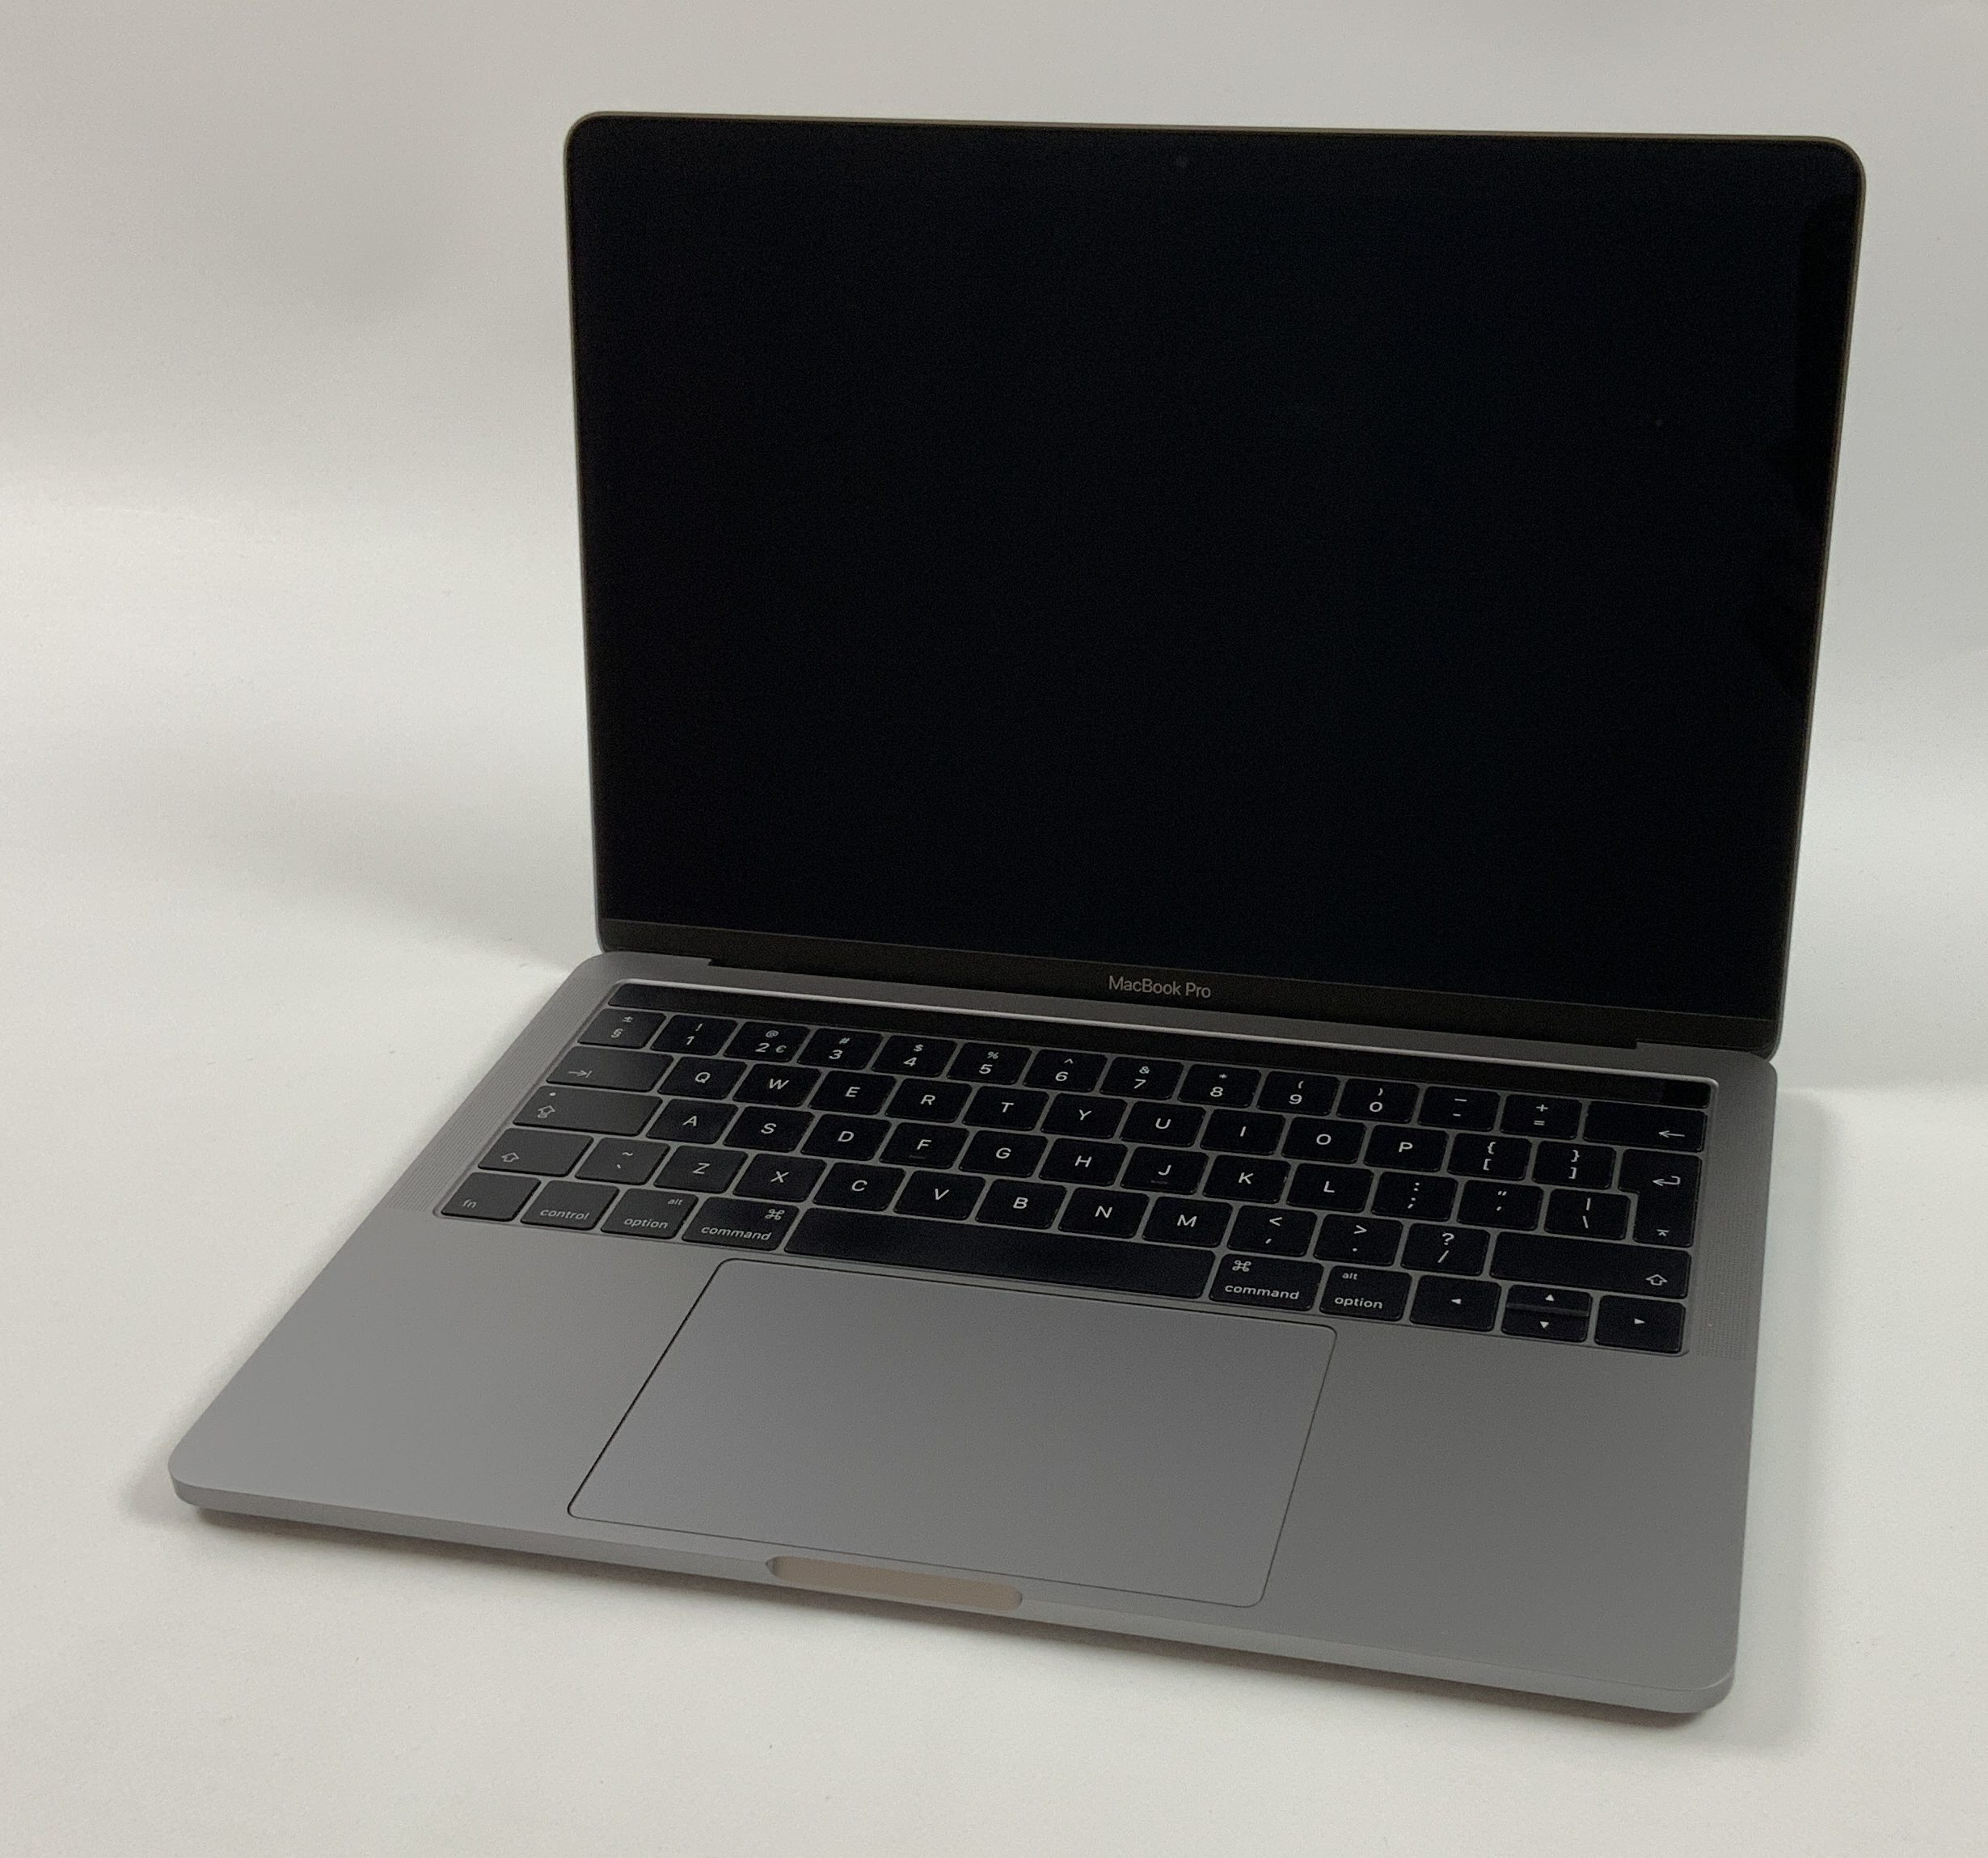 "MacBook Pro 13"" 4TBT Late 2016 (Intel Core i5 2.9 GHz 8 GB RAM 256 GB SSD), Space Gray, Intel Core i5 2.9 GHz, 8 GB RAM, 256 GB SSD, immagine 1"